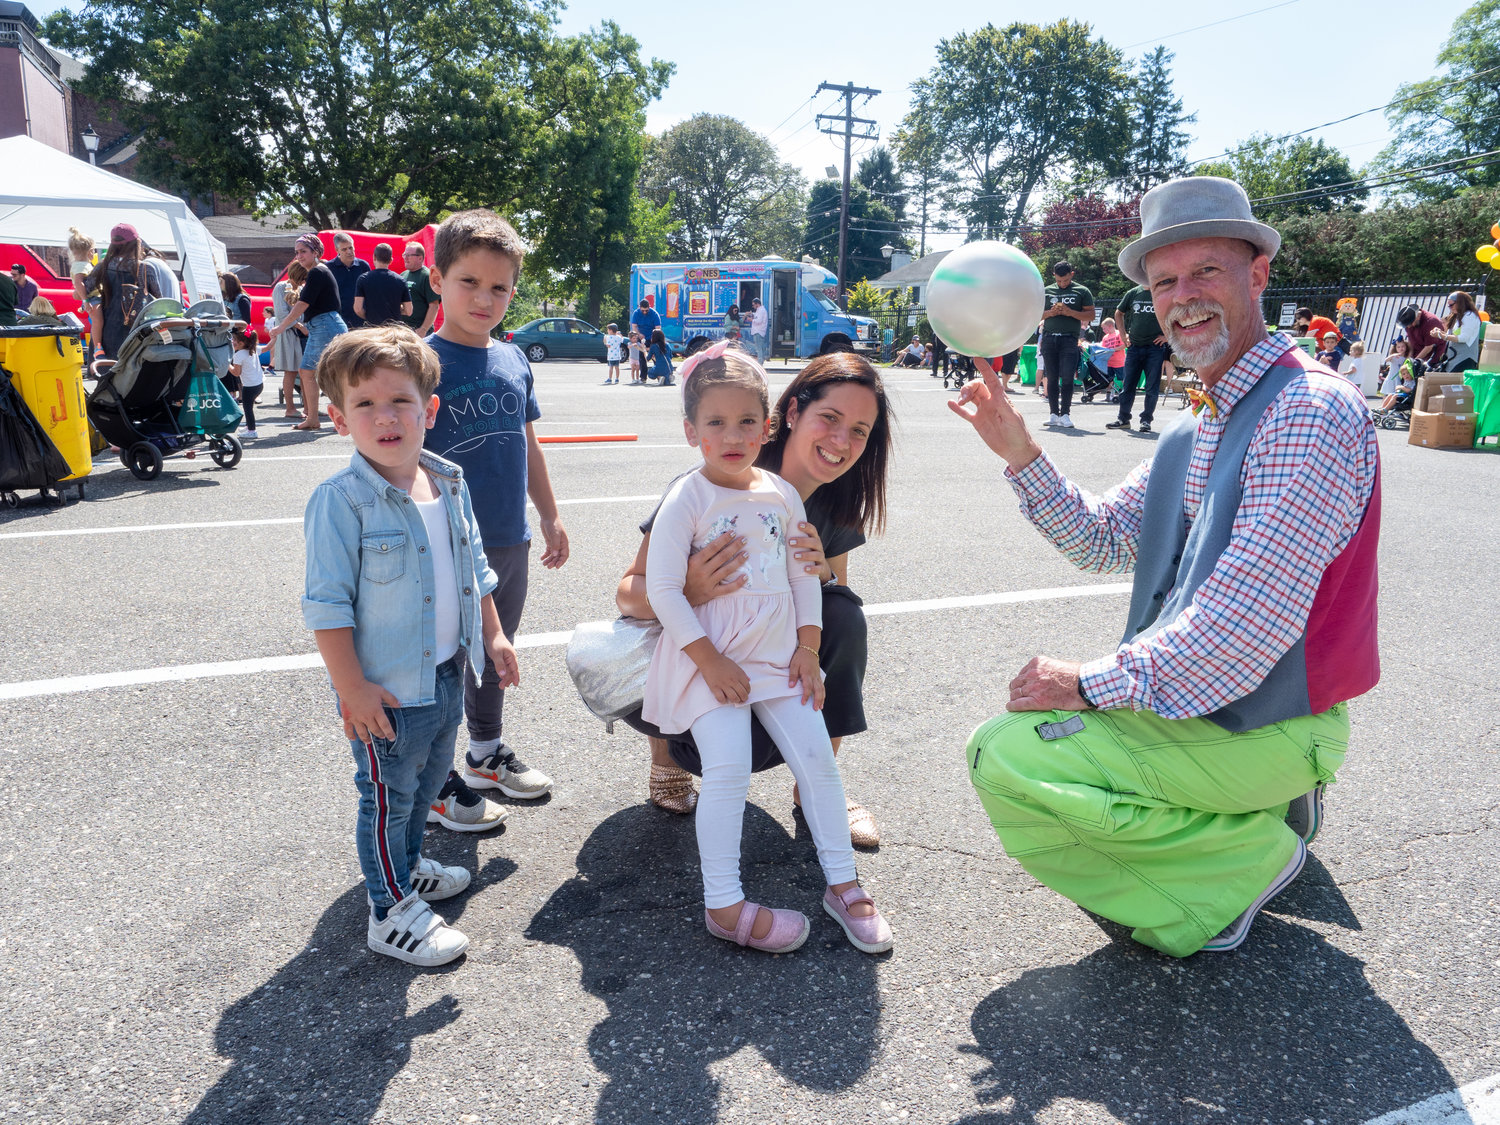 Performer Fred Collins, far right, entertained the Tawil family from left Jake, 2, Sam, 5, Linda, 4, and mother Karen at the JCC's inaugural fall festival on Sept. 15.